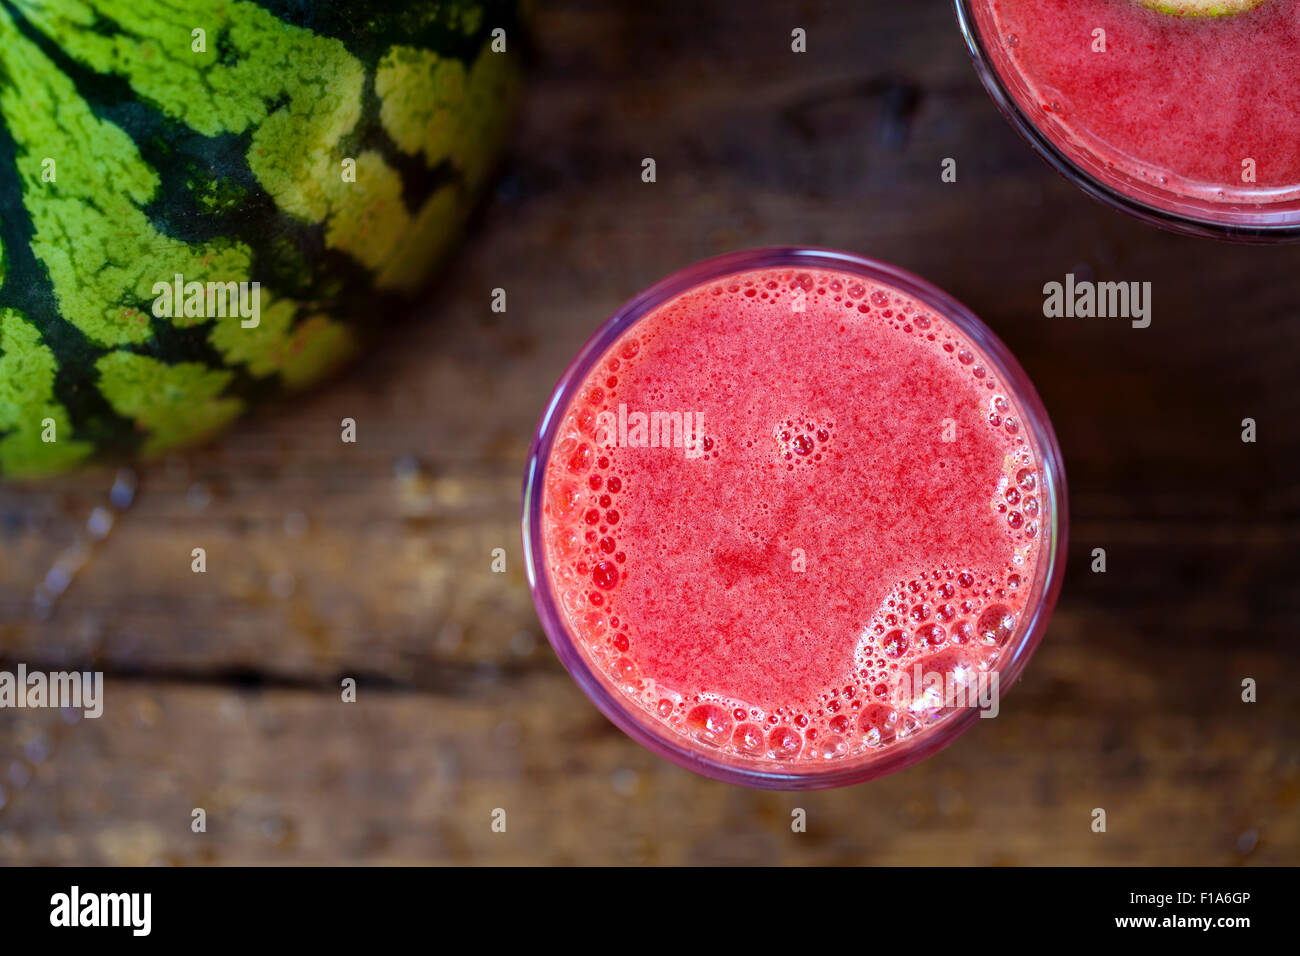 Le jus de pastèque Photo Stock